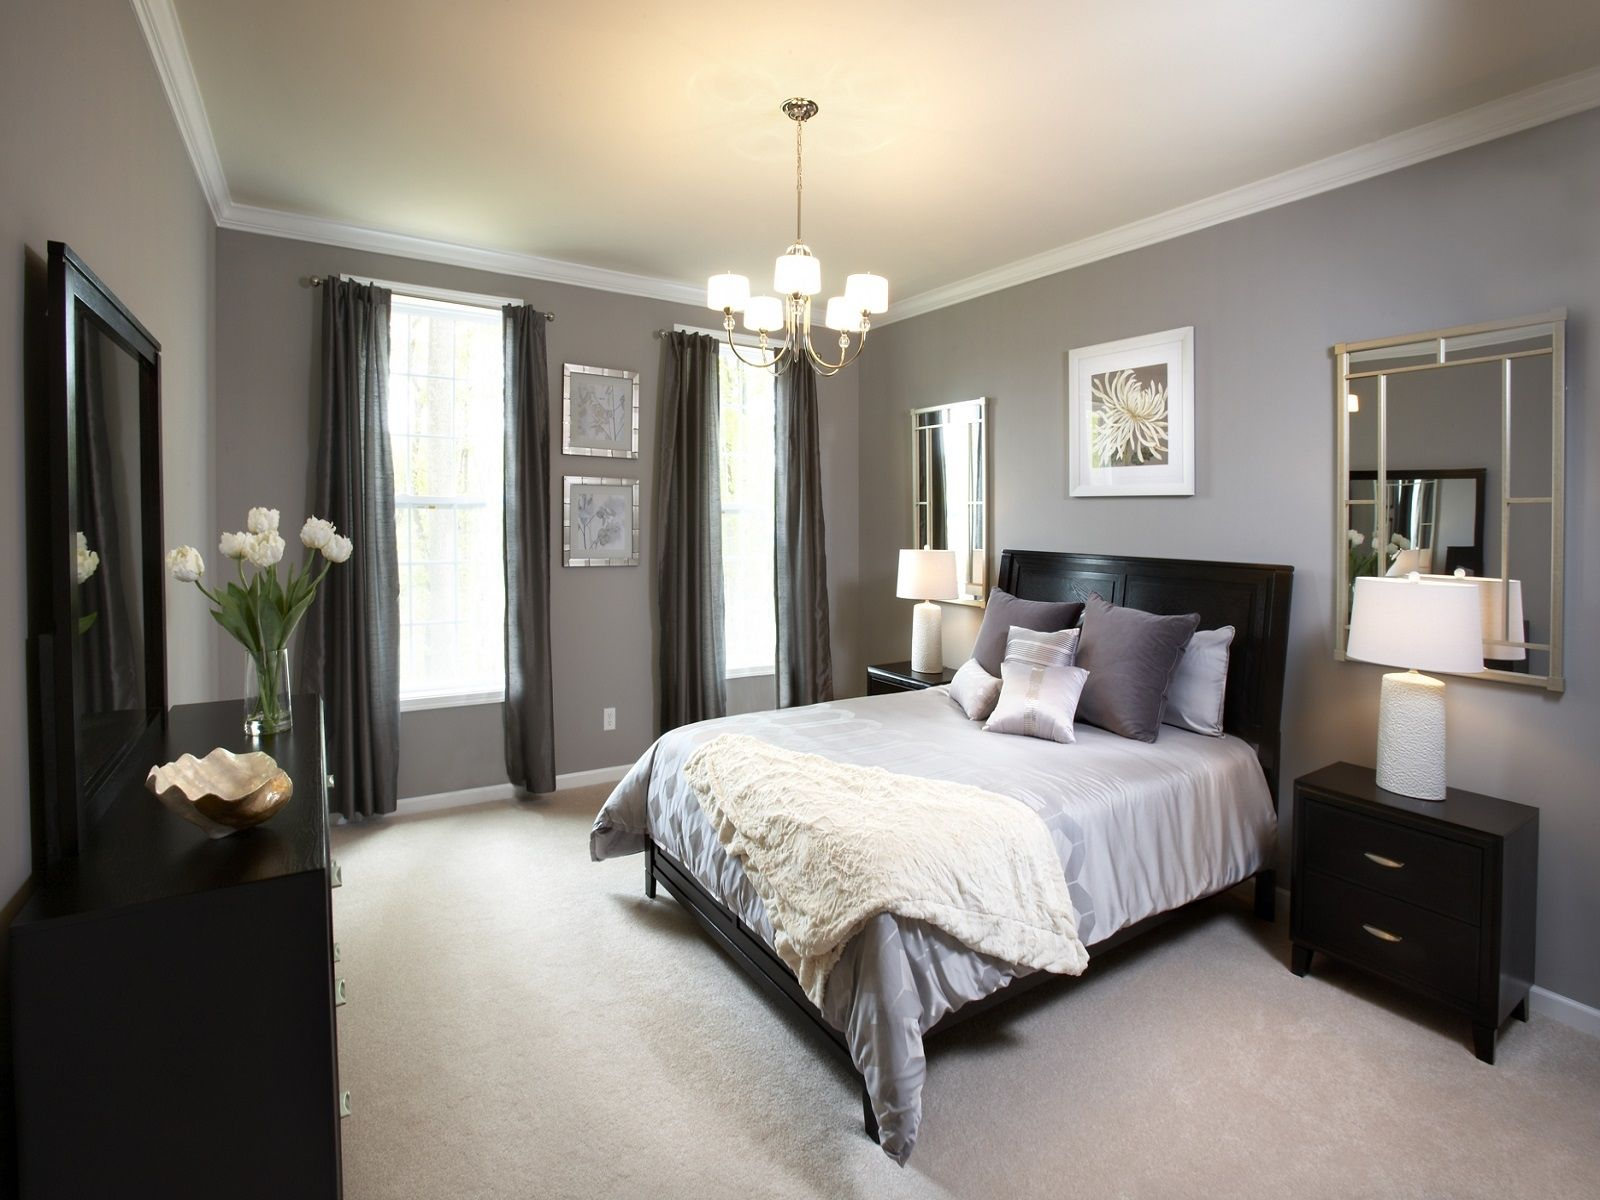 Best 25  Black and grey bedroom ideas on Pinterest   Black white and grey  bedroom  Purple master bedroom furniture and Master bedroom grey. Best 25  Black and grey bedroom ideas on Pinterest   Black white